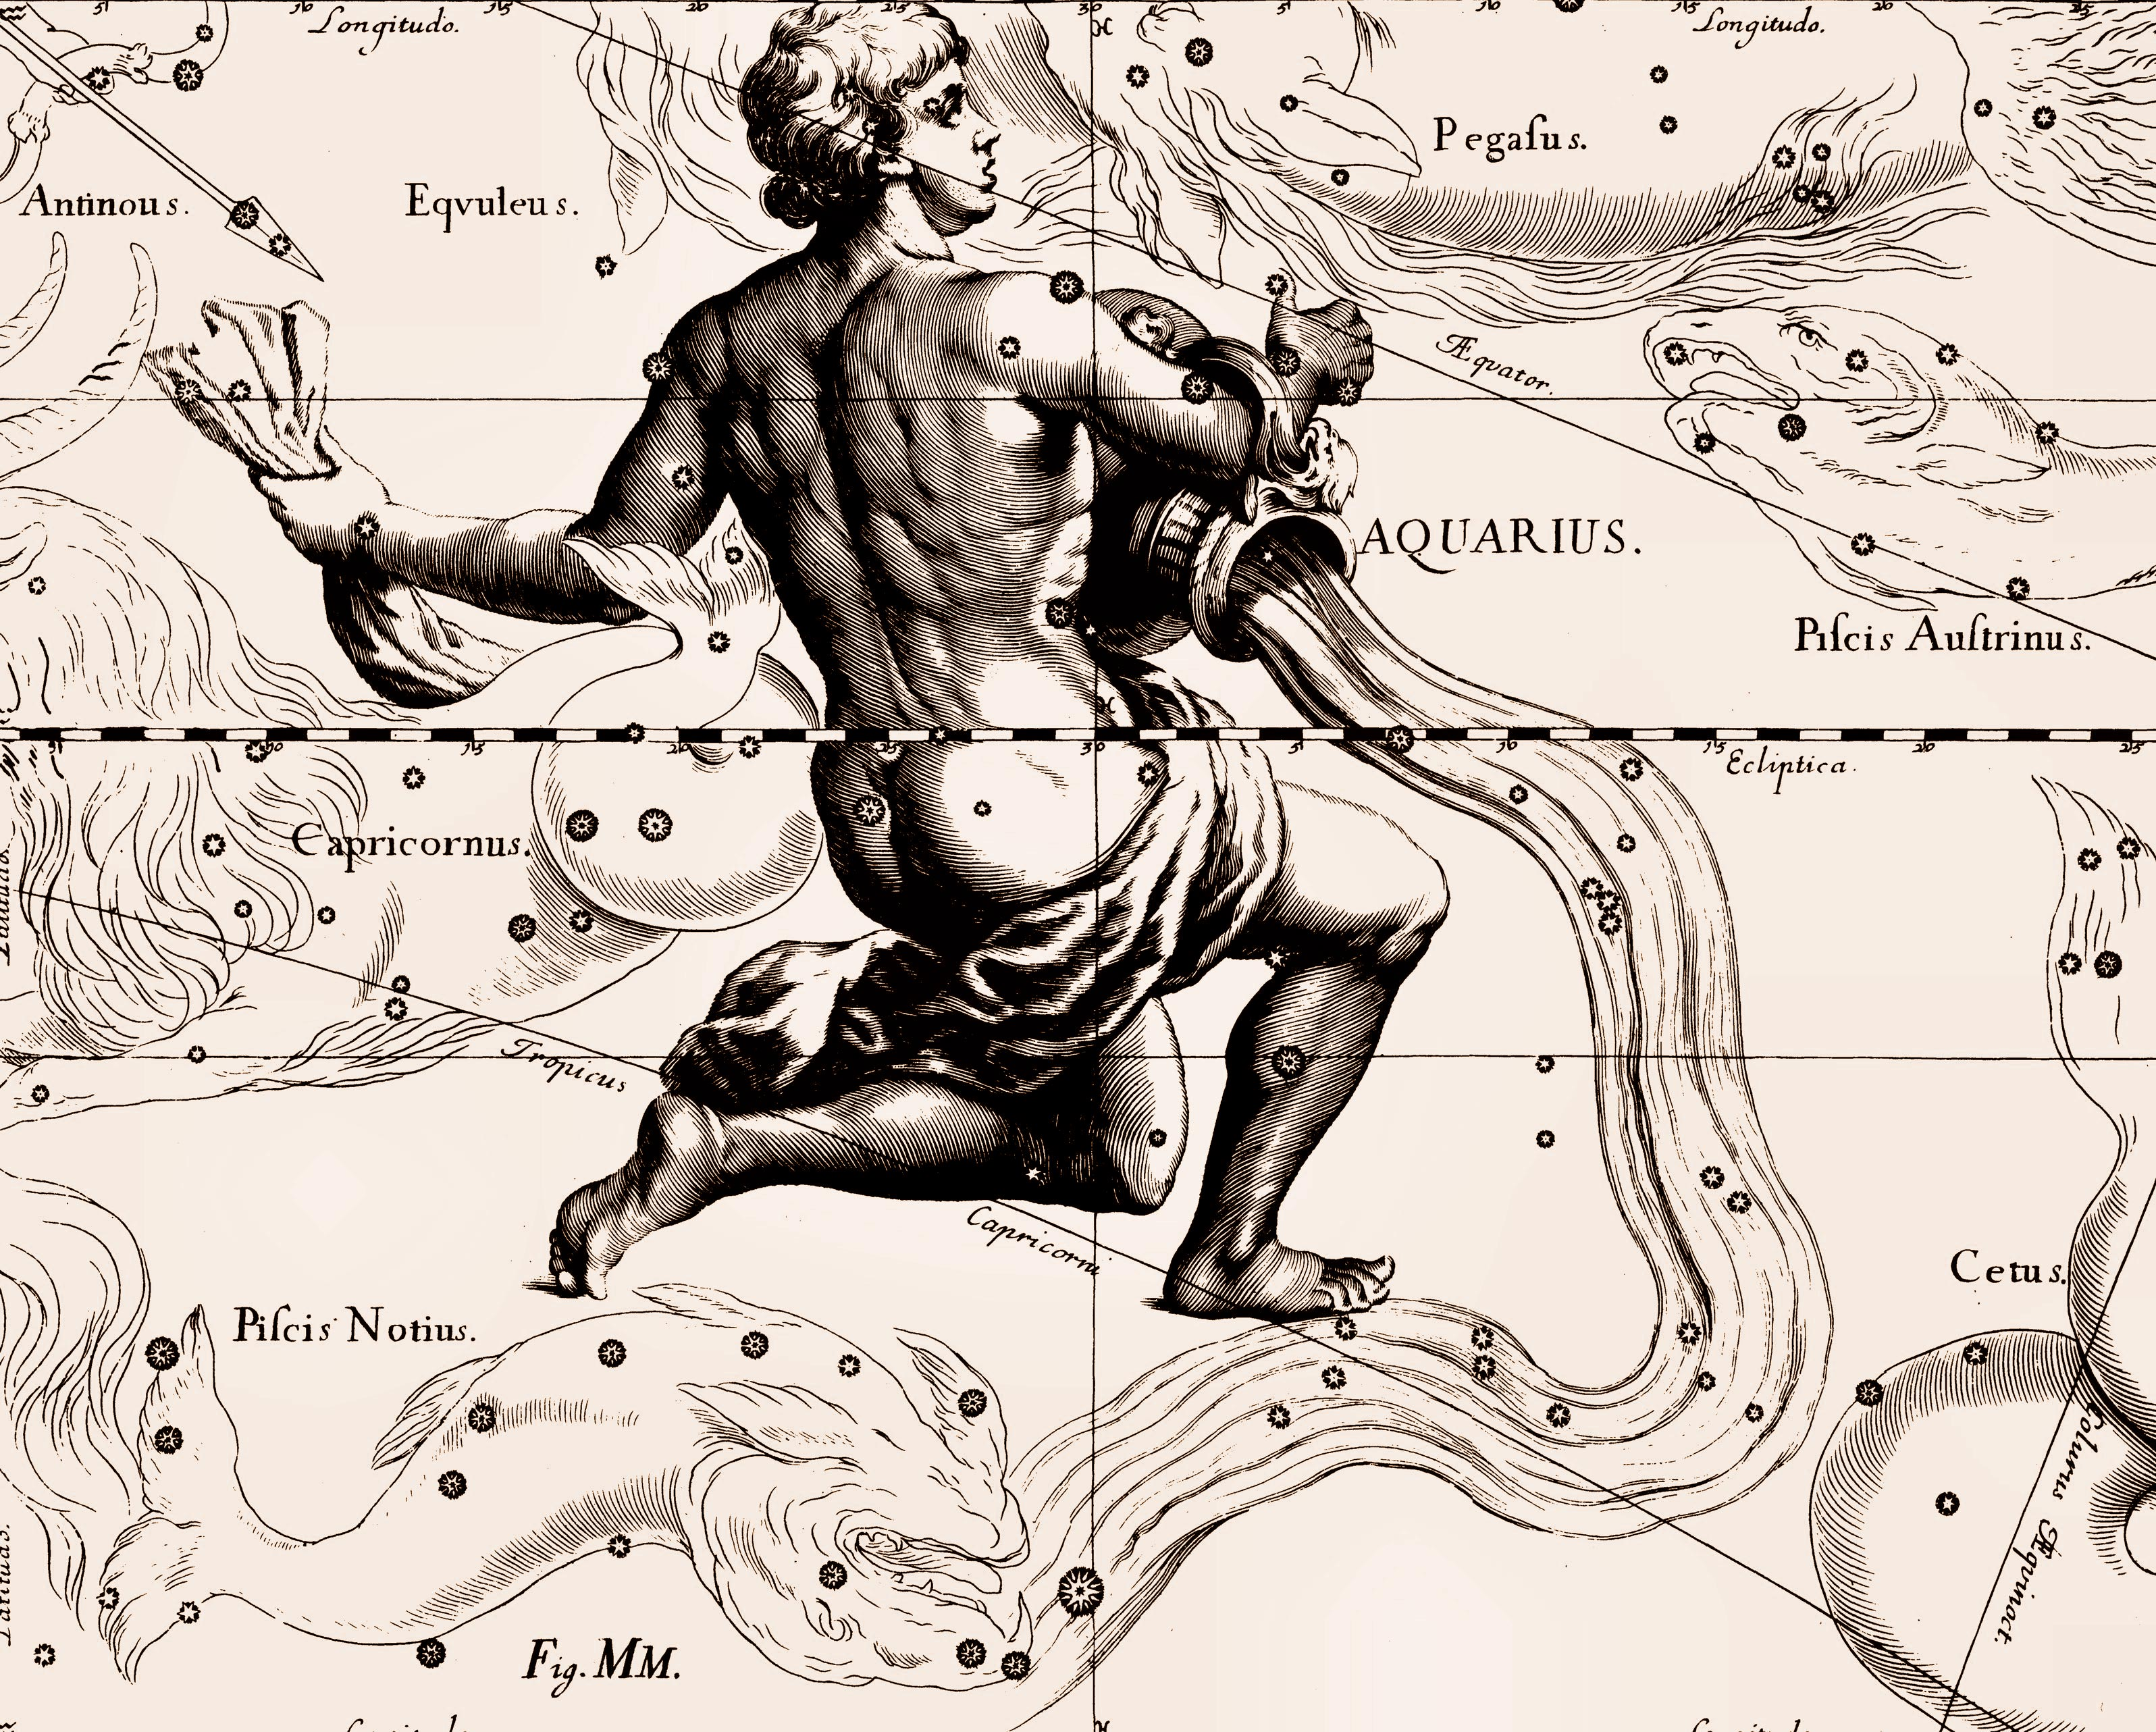 an analysis of the concept of stars throughout the mythology and the aquarious constelation